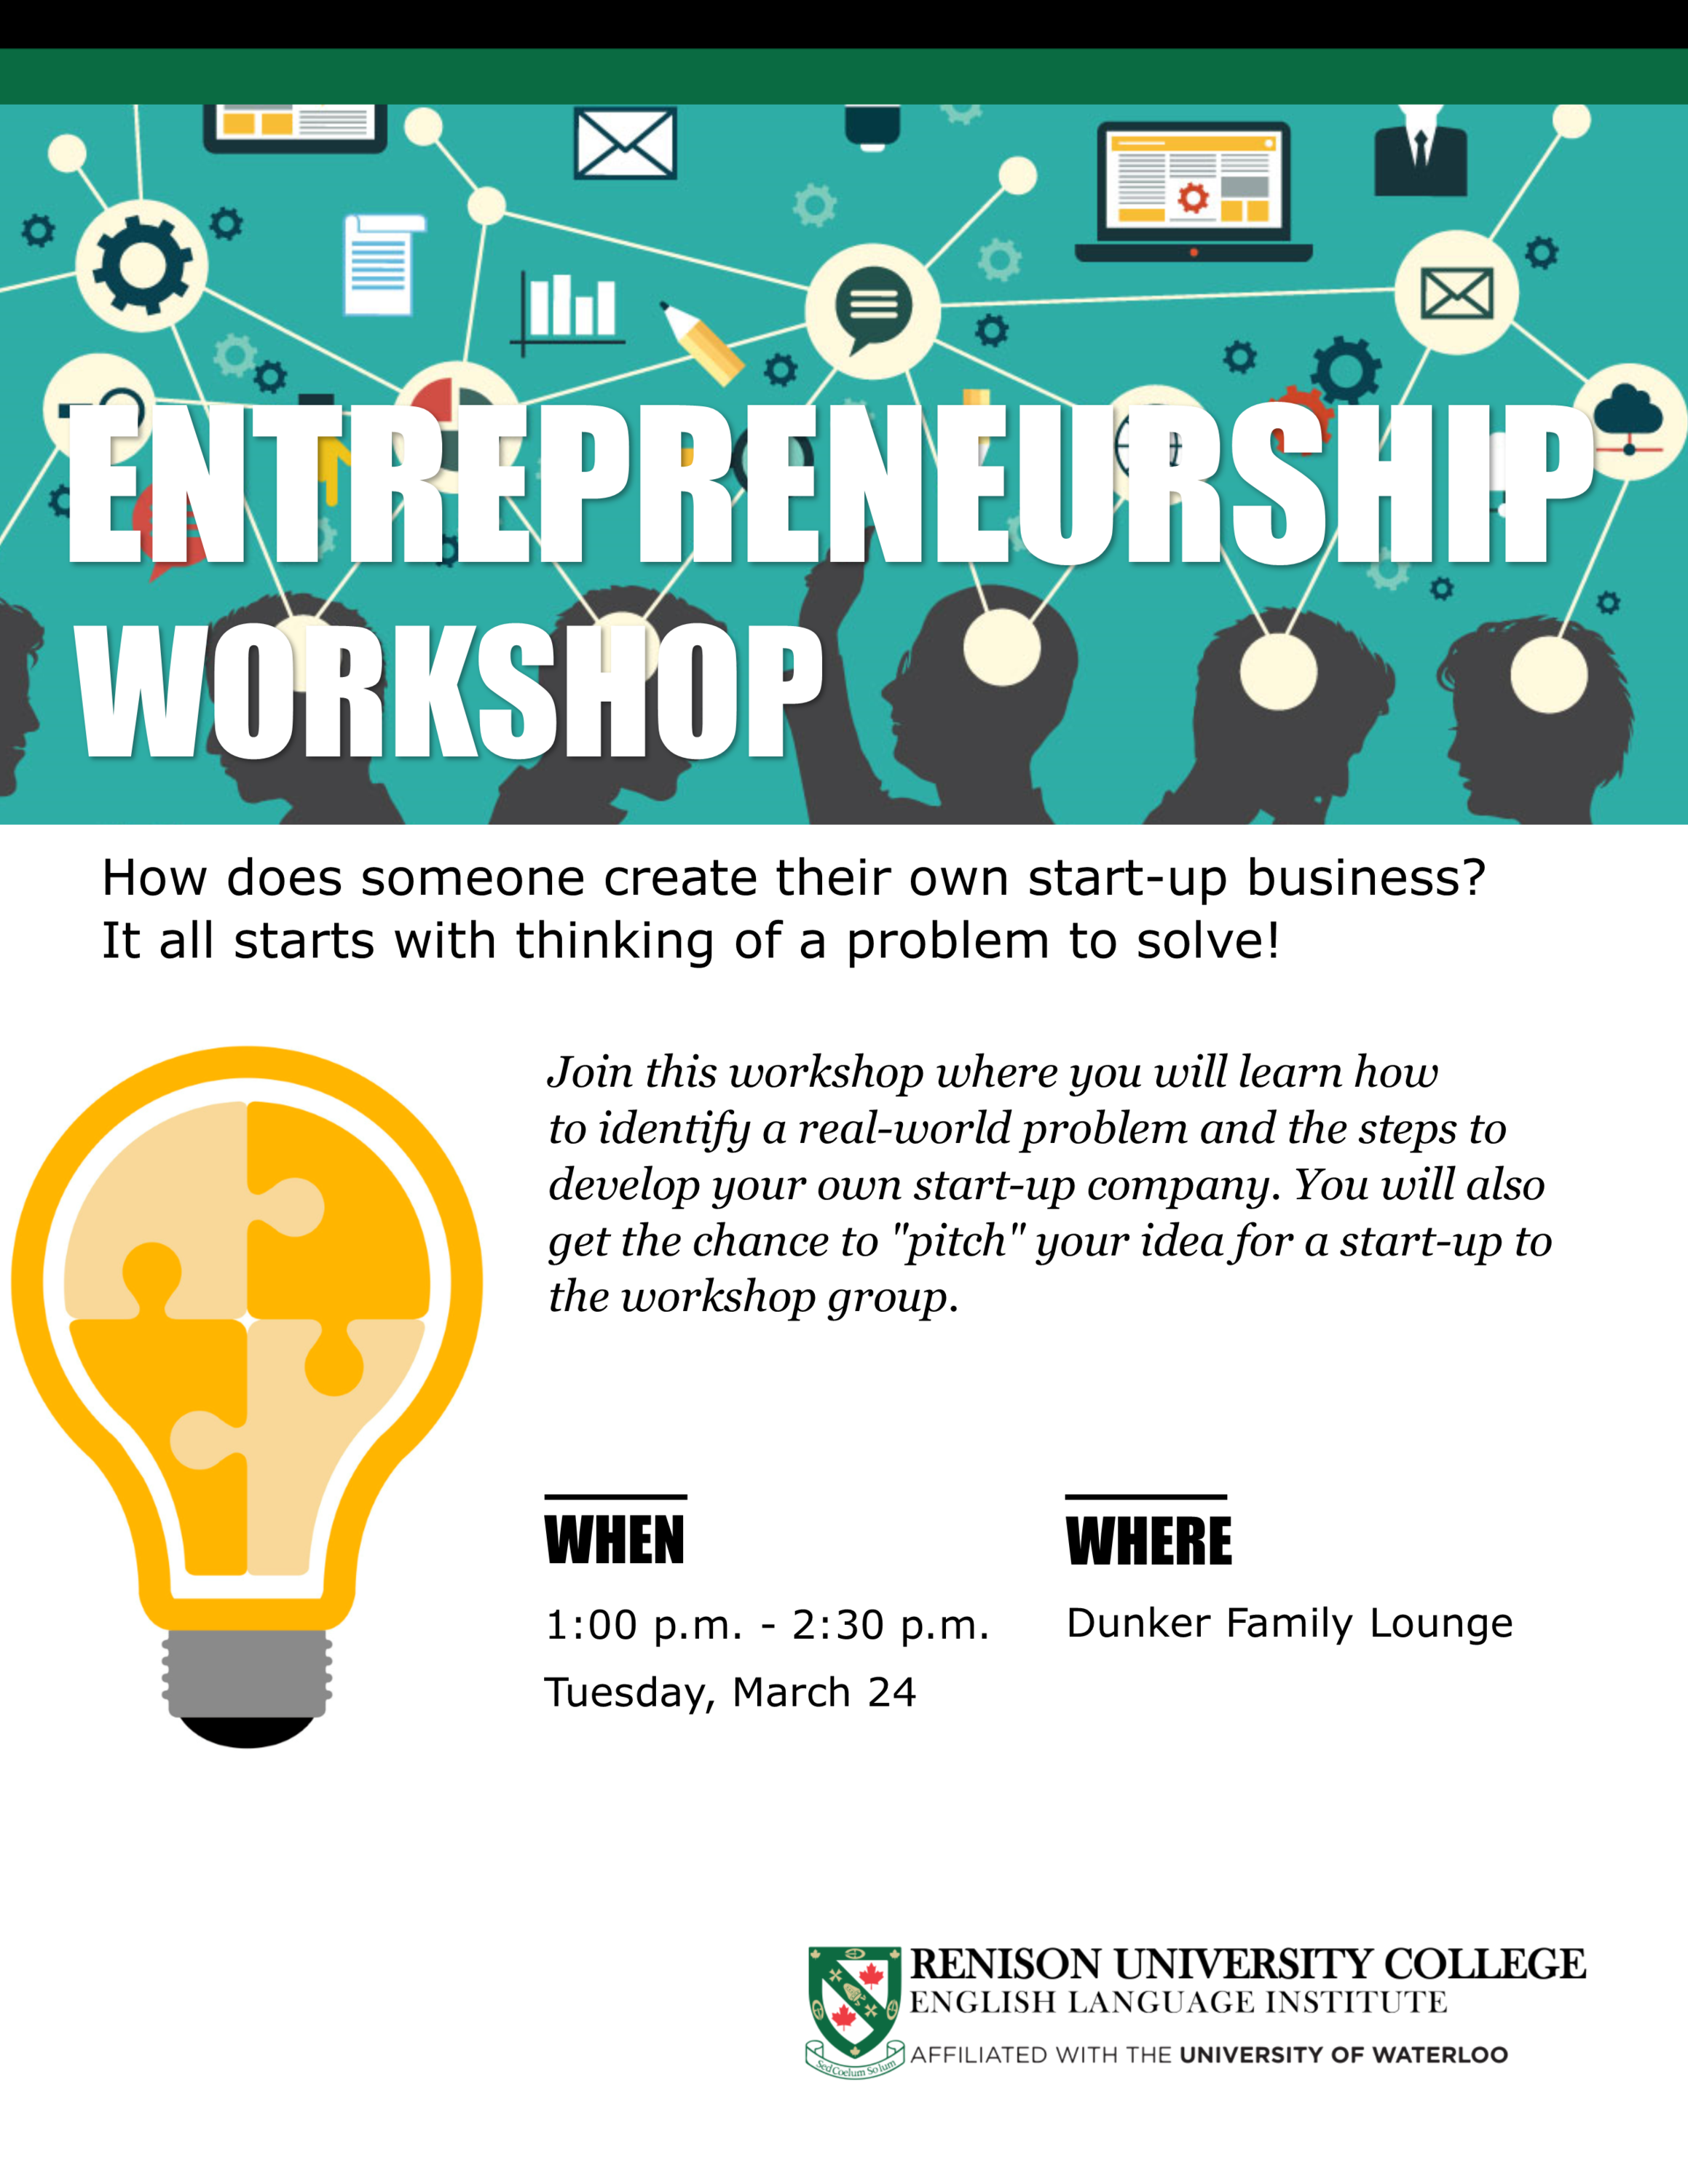 poster for entrepreneurship workshop